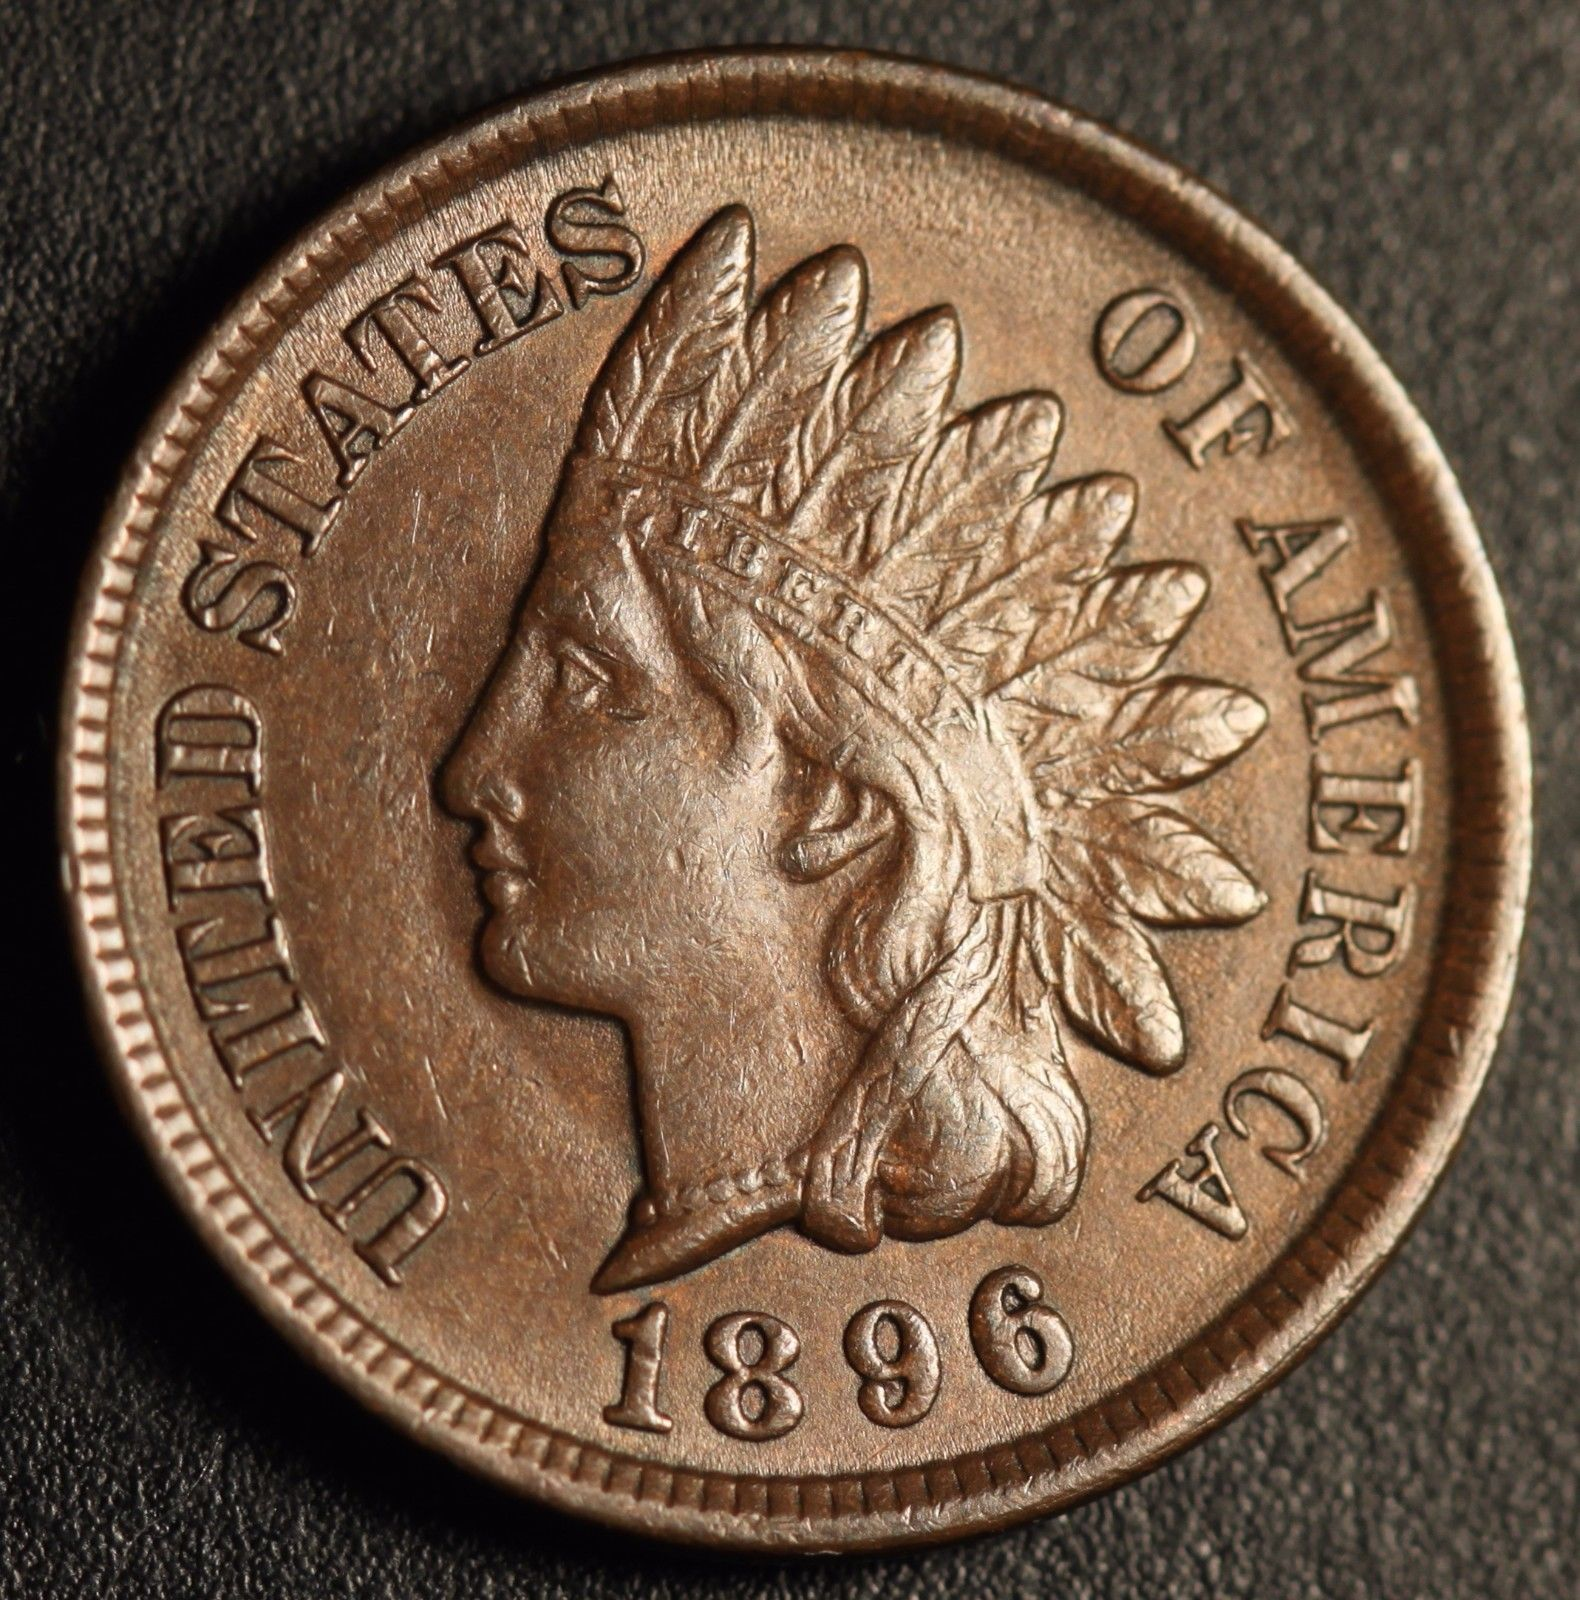 1896 RPD-011 - Indian Head Penny - Photo by Ed Nathanson